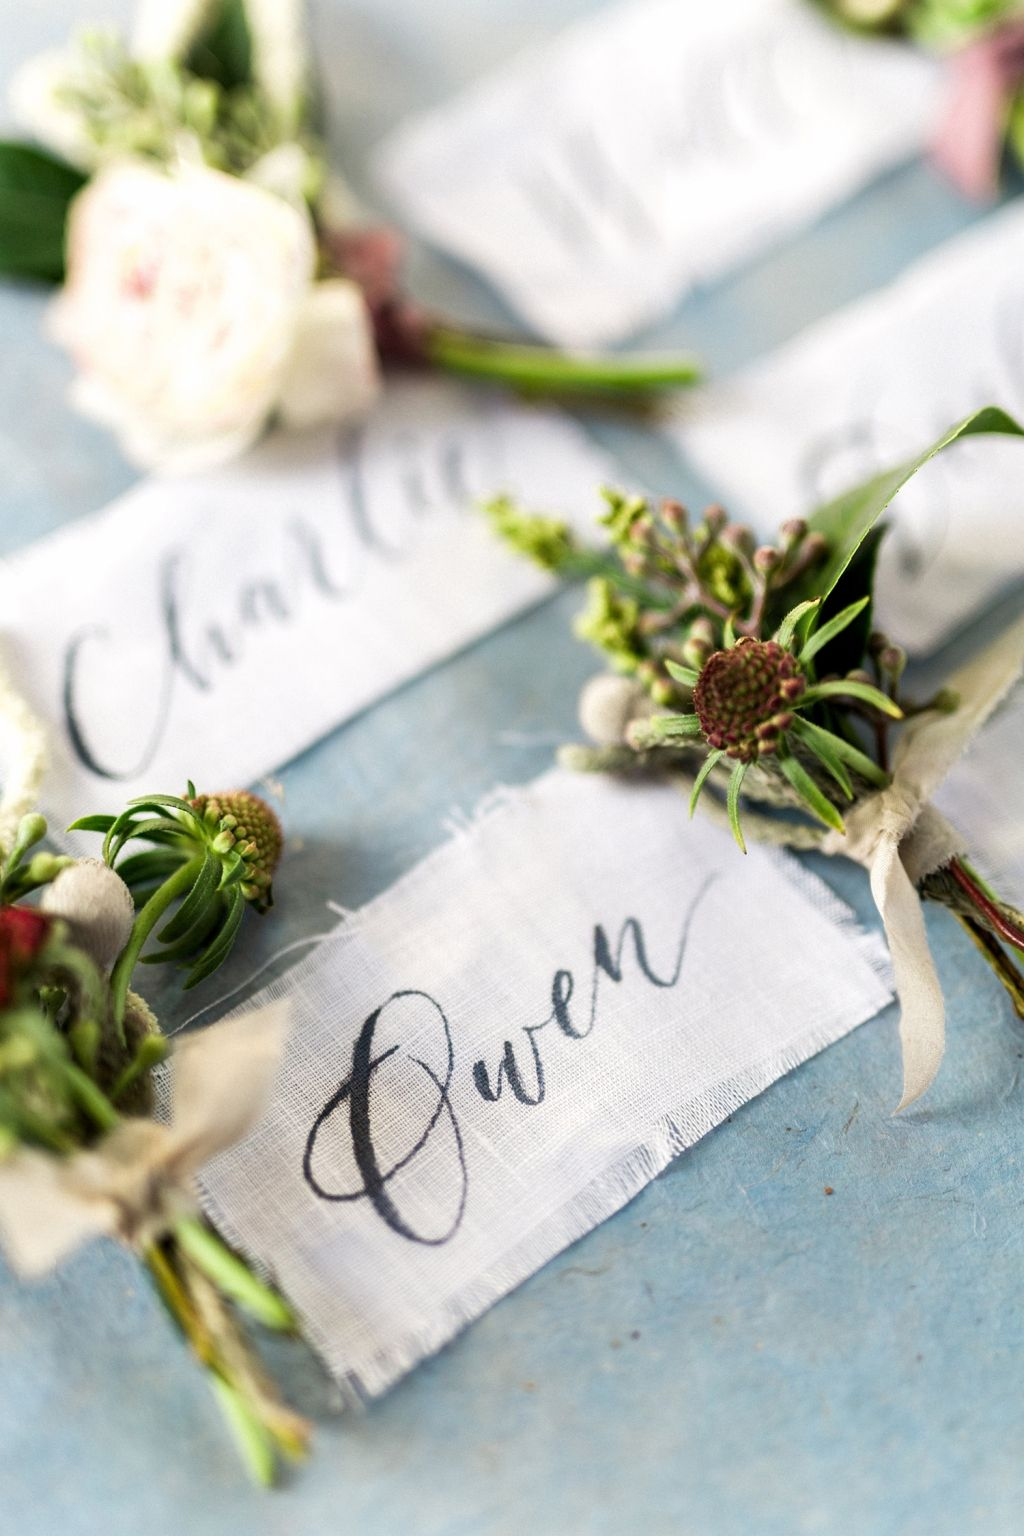 Elegant Southern wedding ideas from Tenneesee via Magnolia Rouge ...